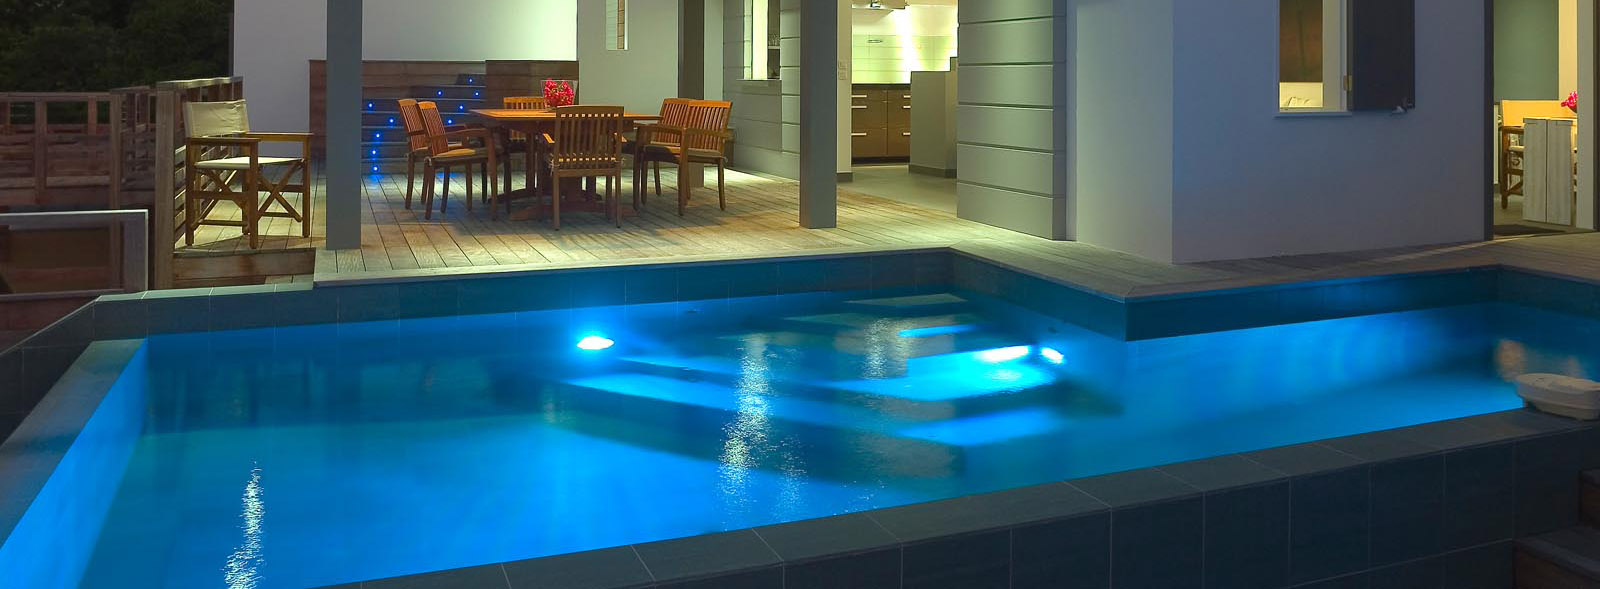 Led Aqua 50 Amp 150 Swimming Pool Lighting And Kreepy Krauly